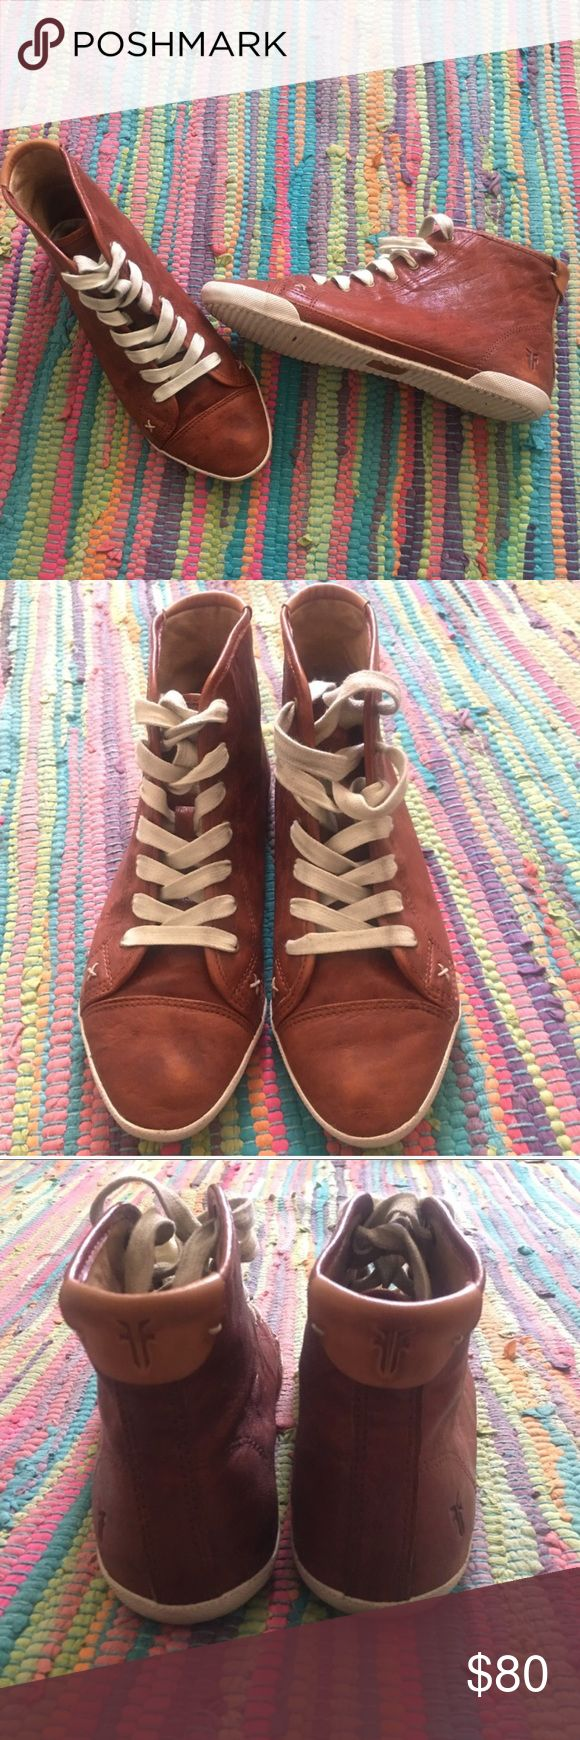 Frye high tops Frye high top sneakers. Bought from another posher but they don't fit! Don't think she ever wore them.. Genuine leather and very cute. Ships same day! Frye Shoes Sneakers